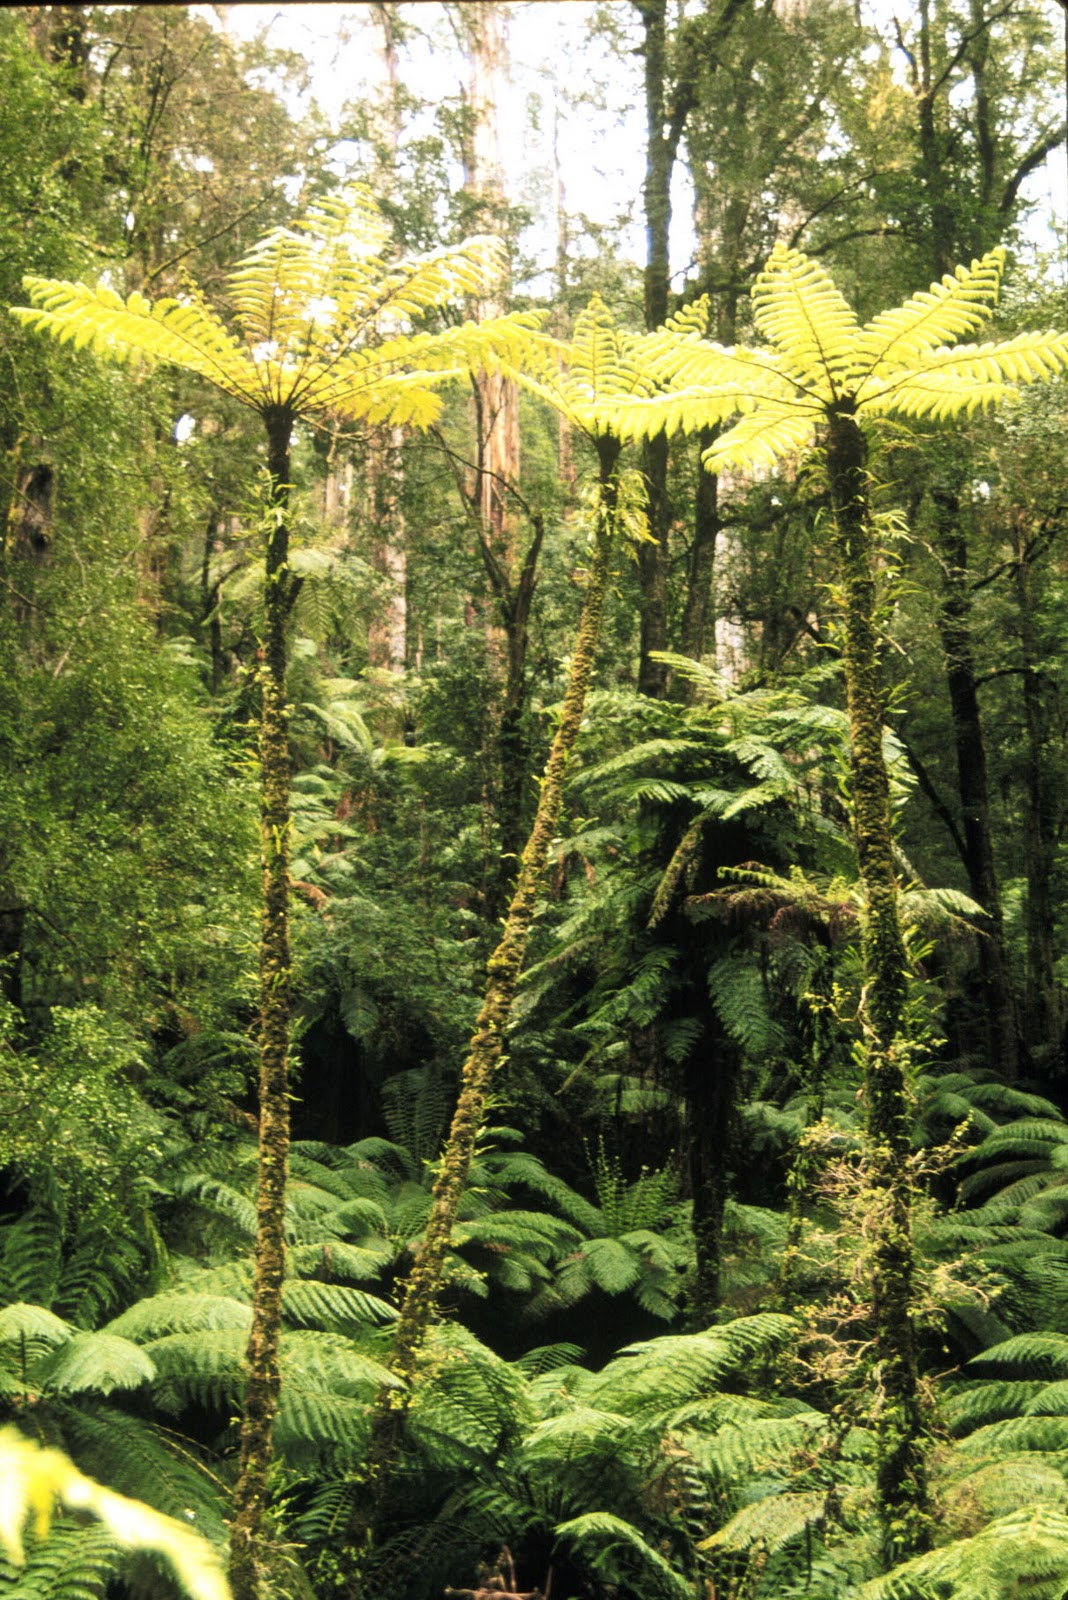 medium resolution of tree ferns are vascular plants and their spore producing generation is the main plant that can get quite tall